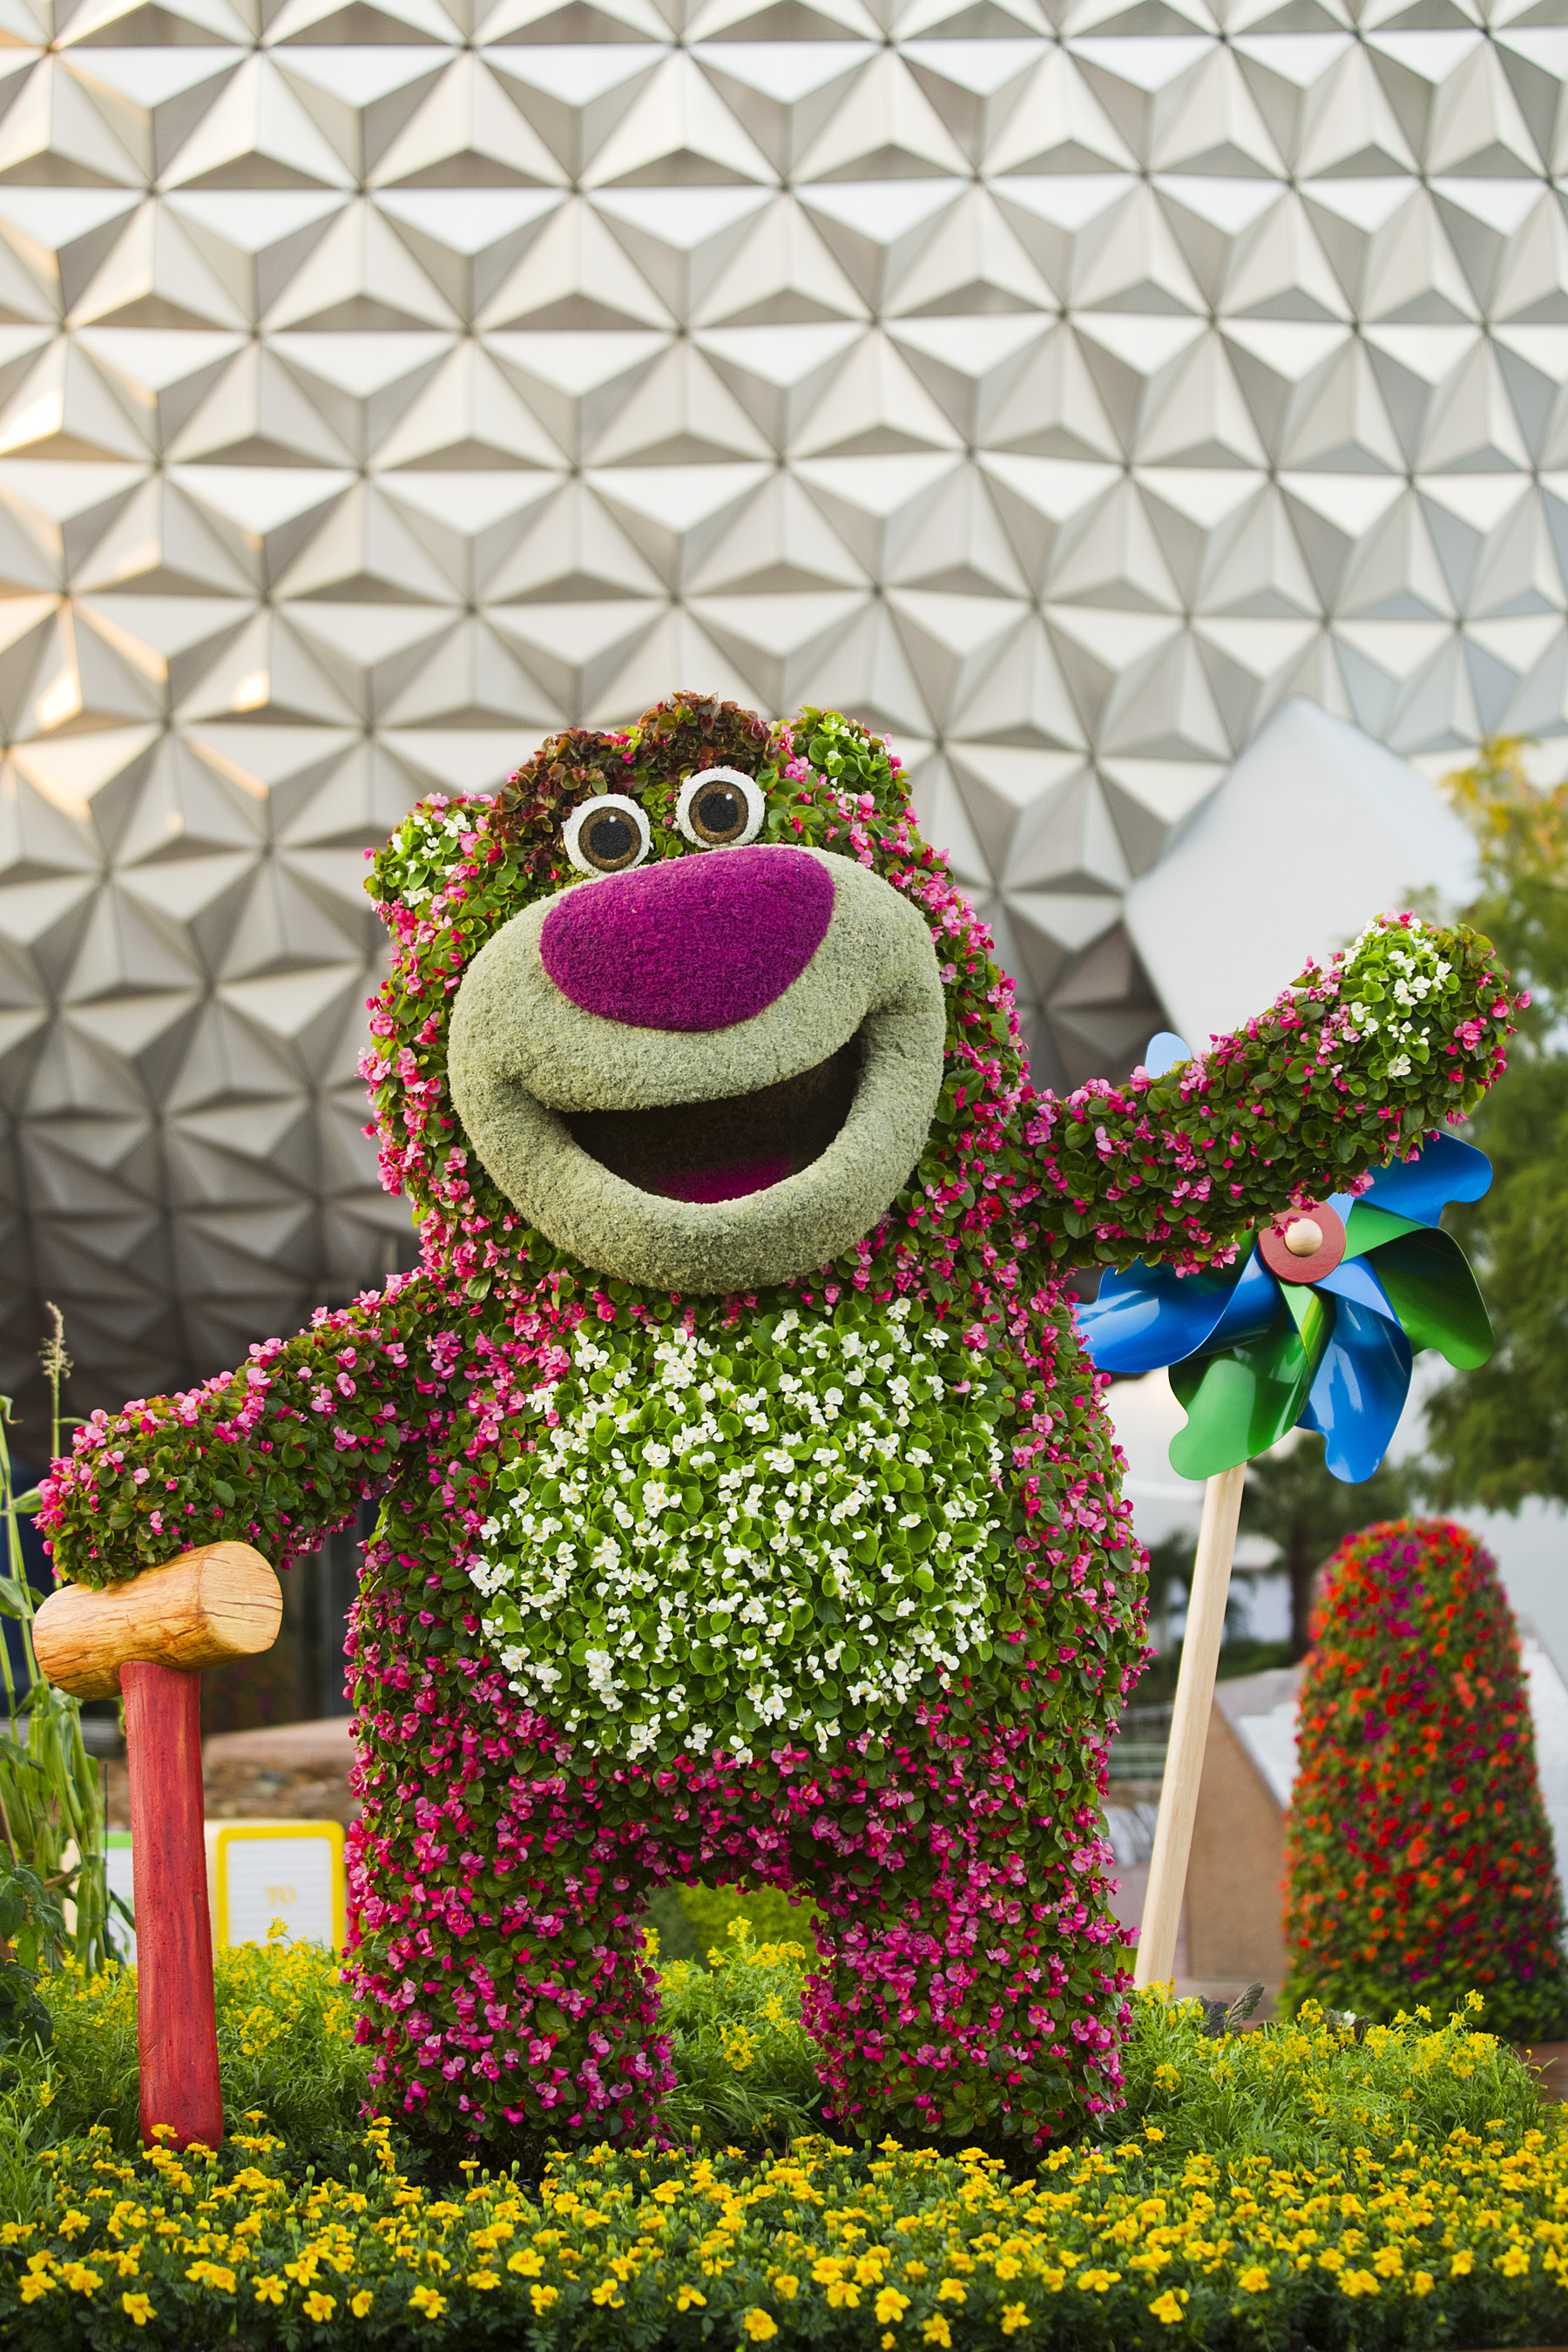 Strawberry-scented Lots-o'-Huggin' Bear Topiary